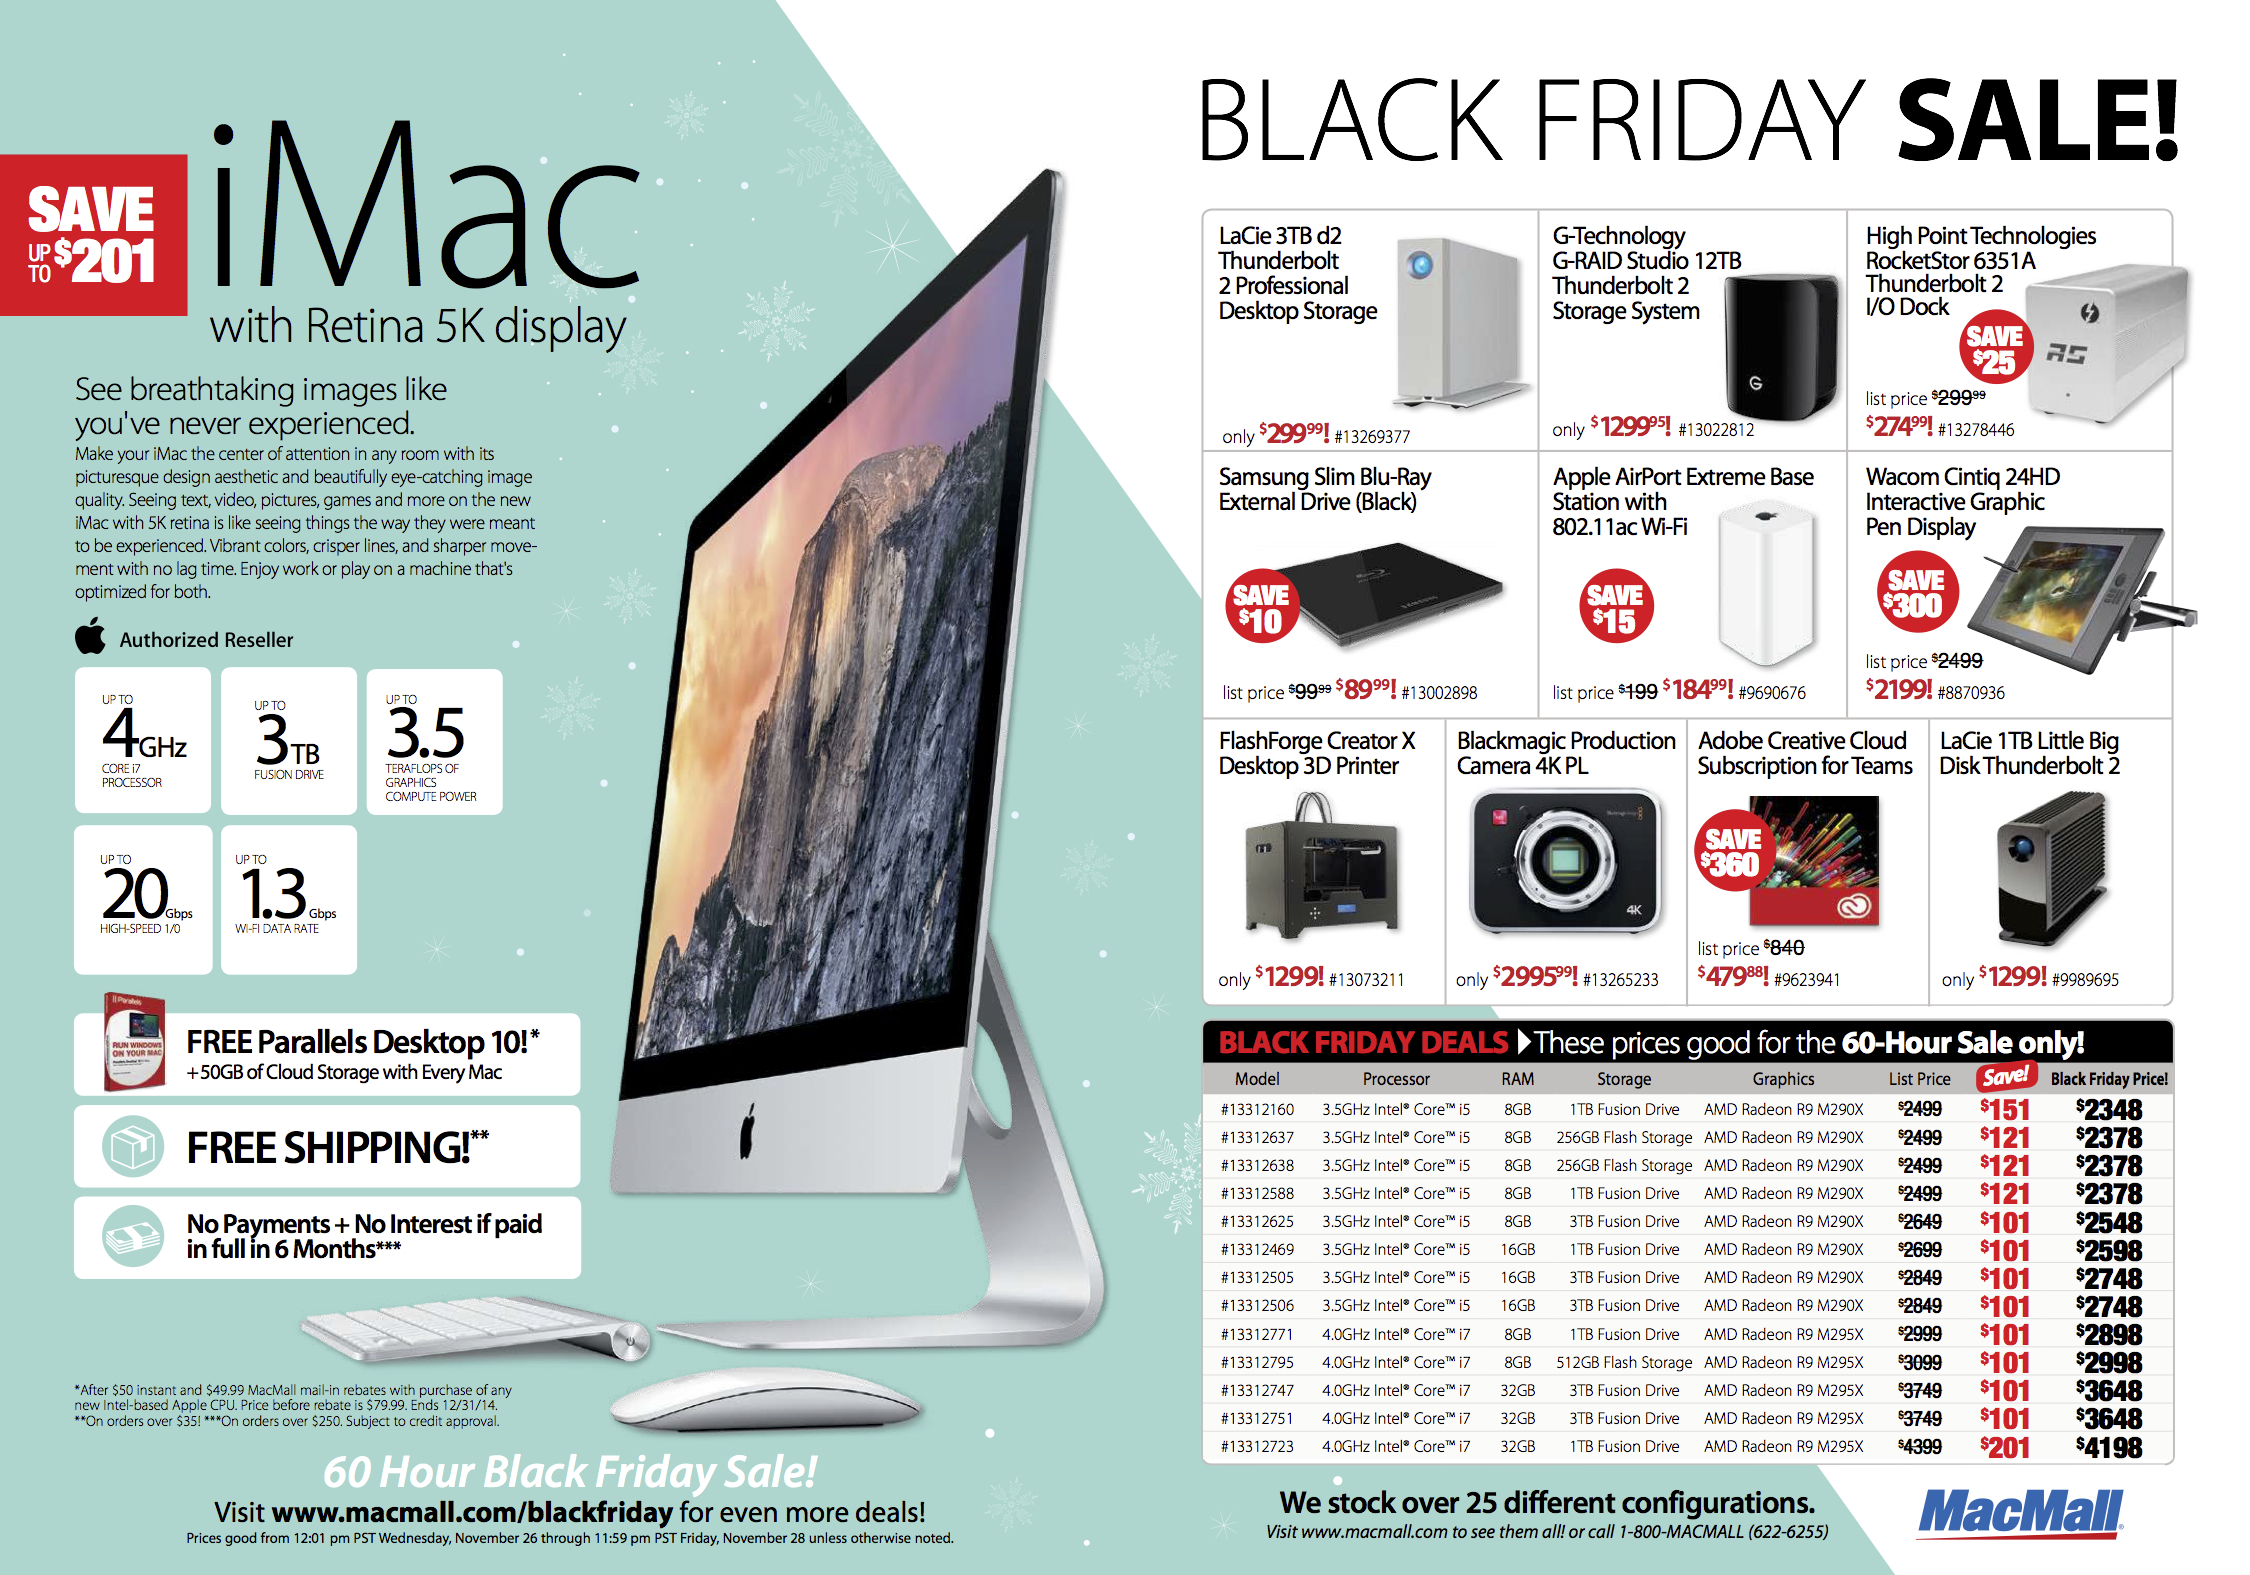 MacMall's Black Friday sale features savings of up to 86% on the largest selection of Macs, iPads, more